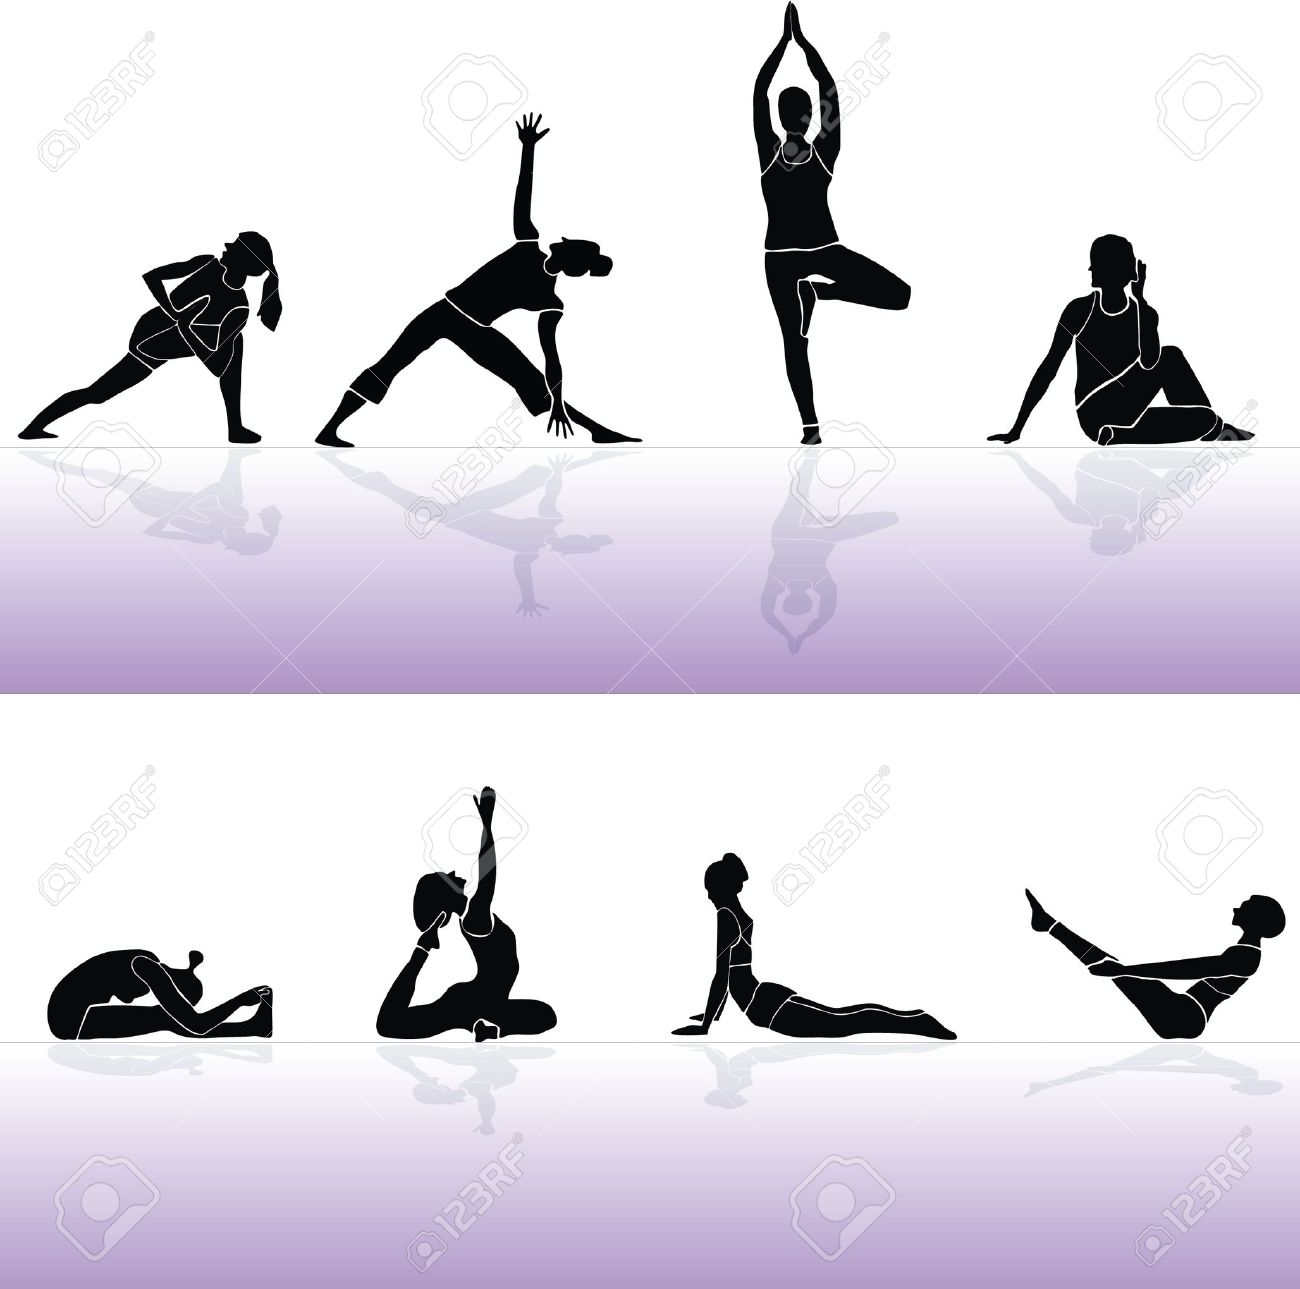 Yoga siluette vector and fitness 2 Stock Vector - 10316648